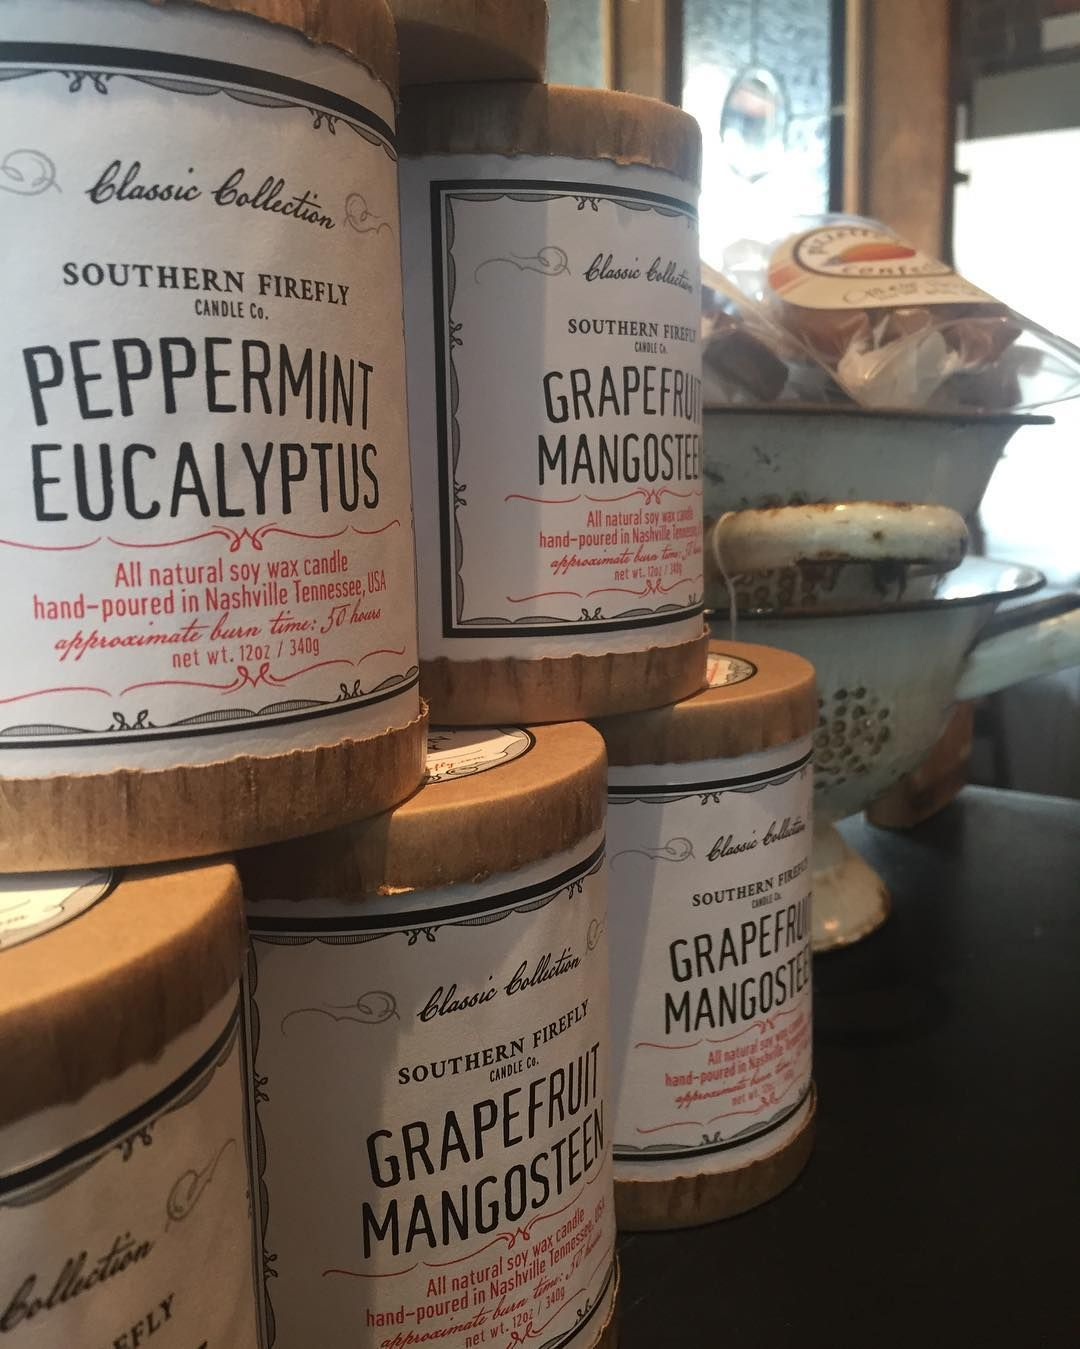 Peppermint Eucalyptus Candles from southernfireflycandle